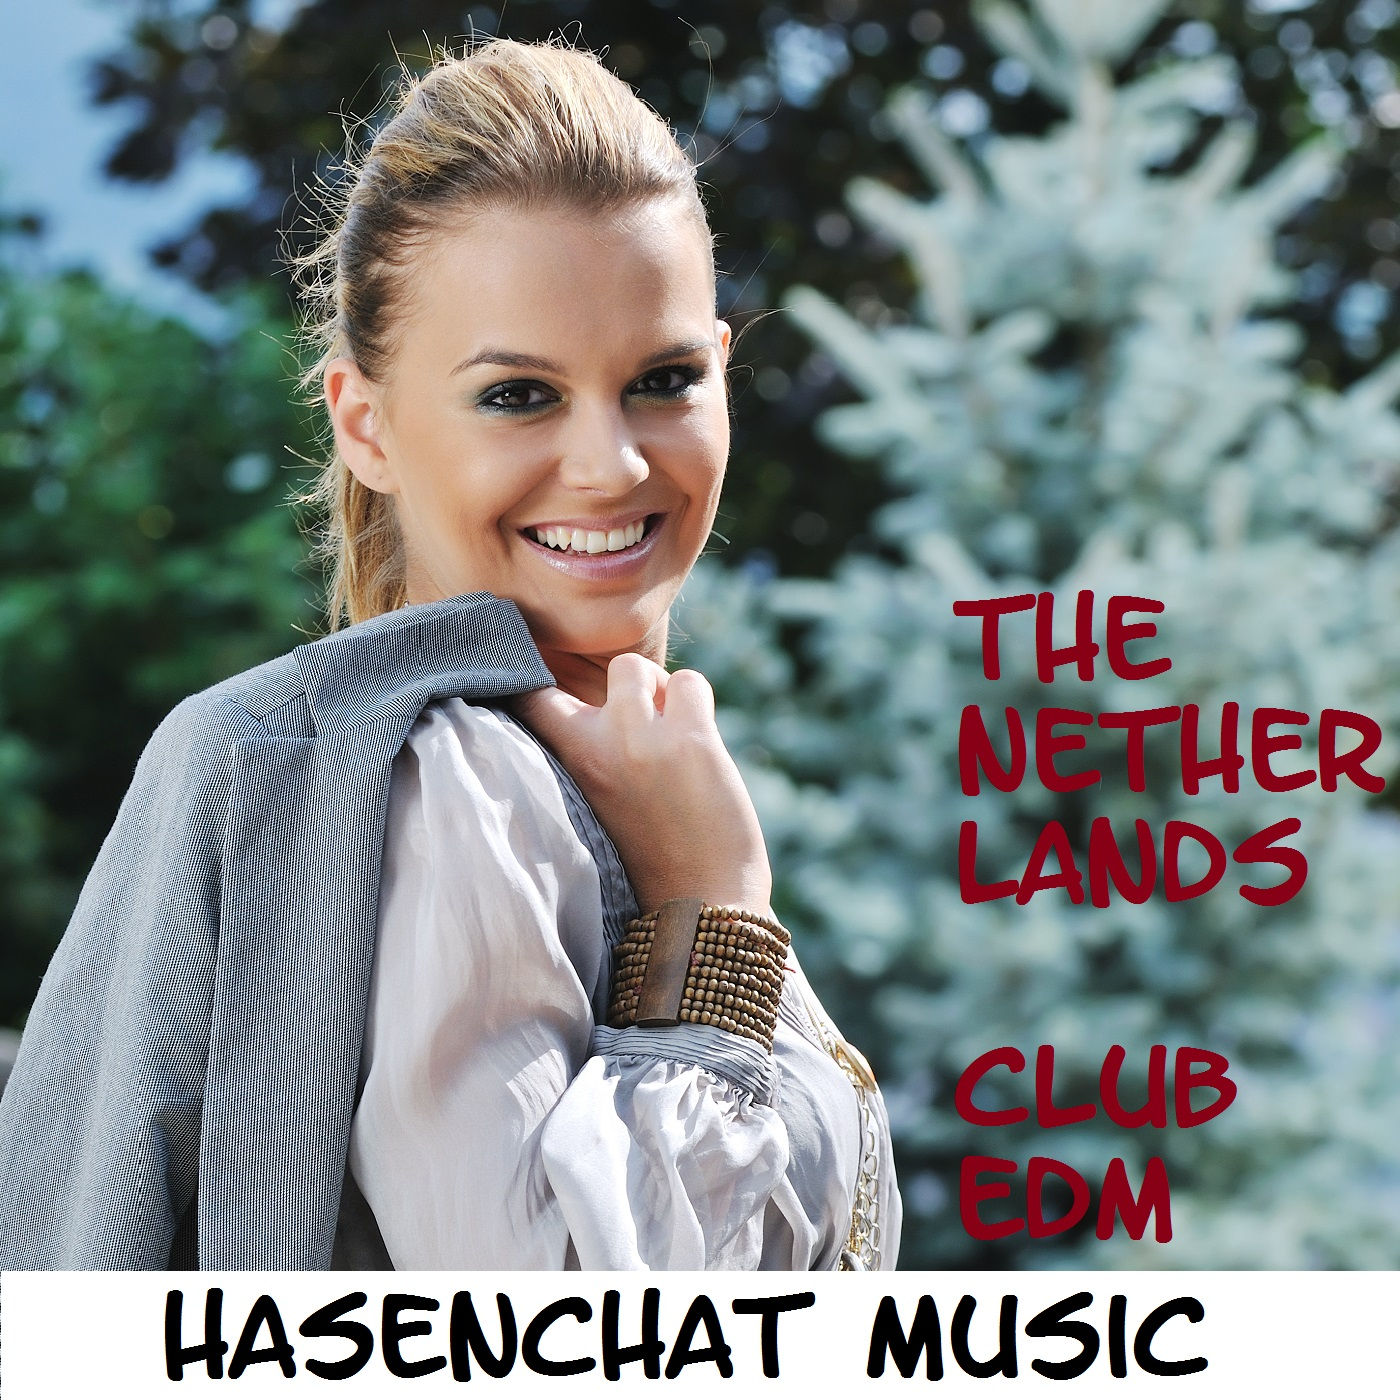 HasenChat Music - The Netherlands Club EDM